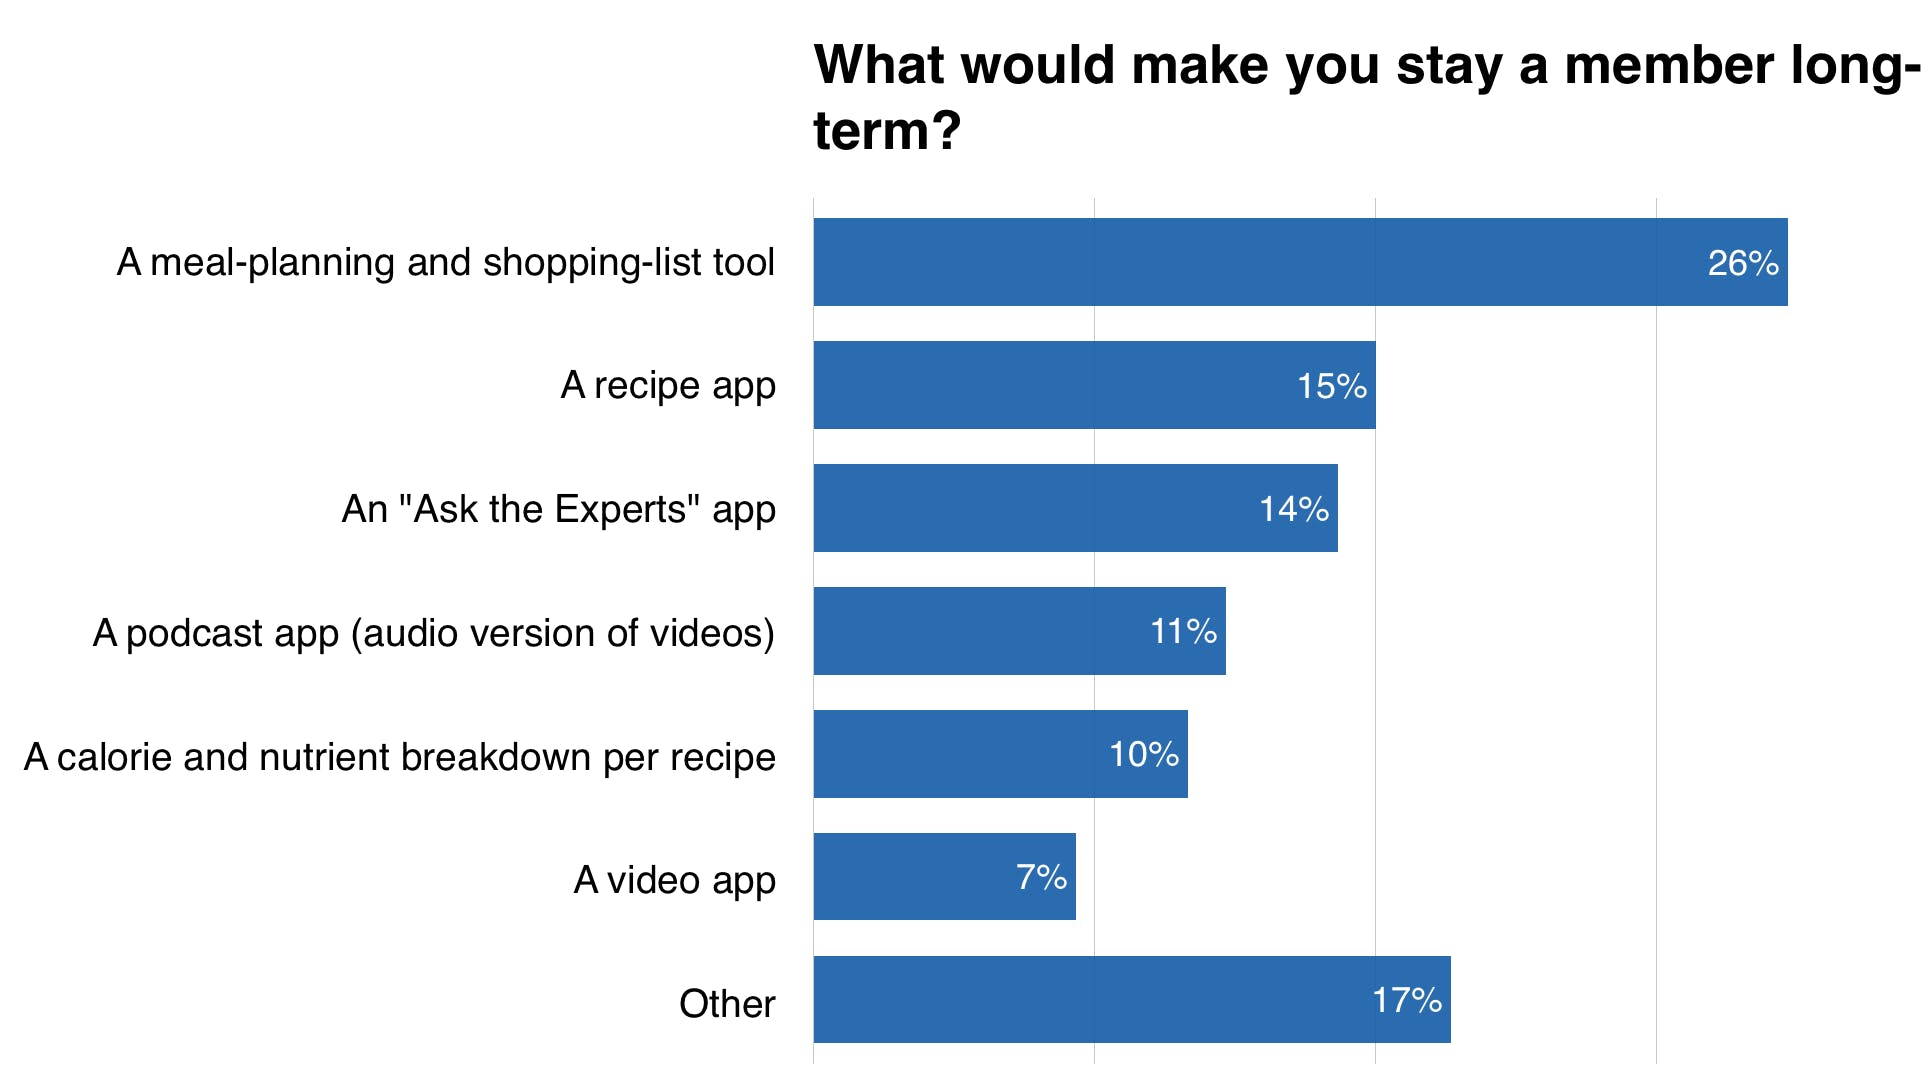 What Would Make You Stay a Member Long-Term?